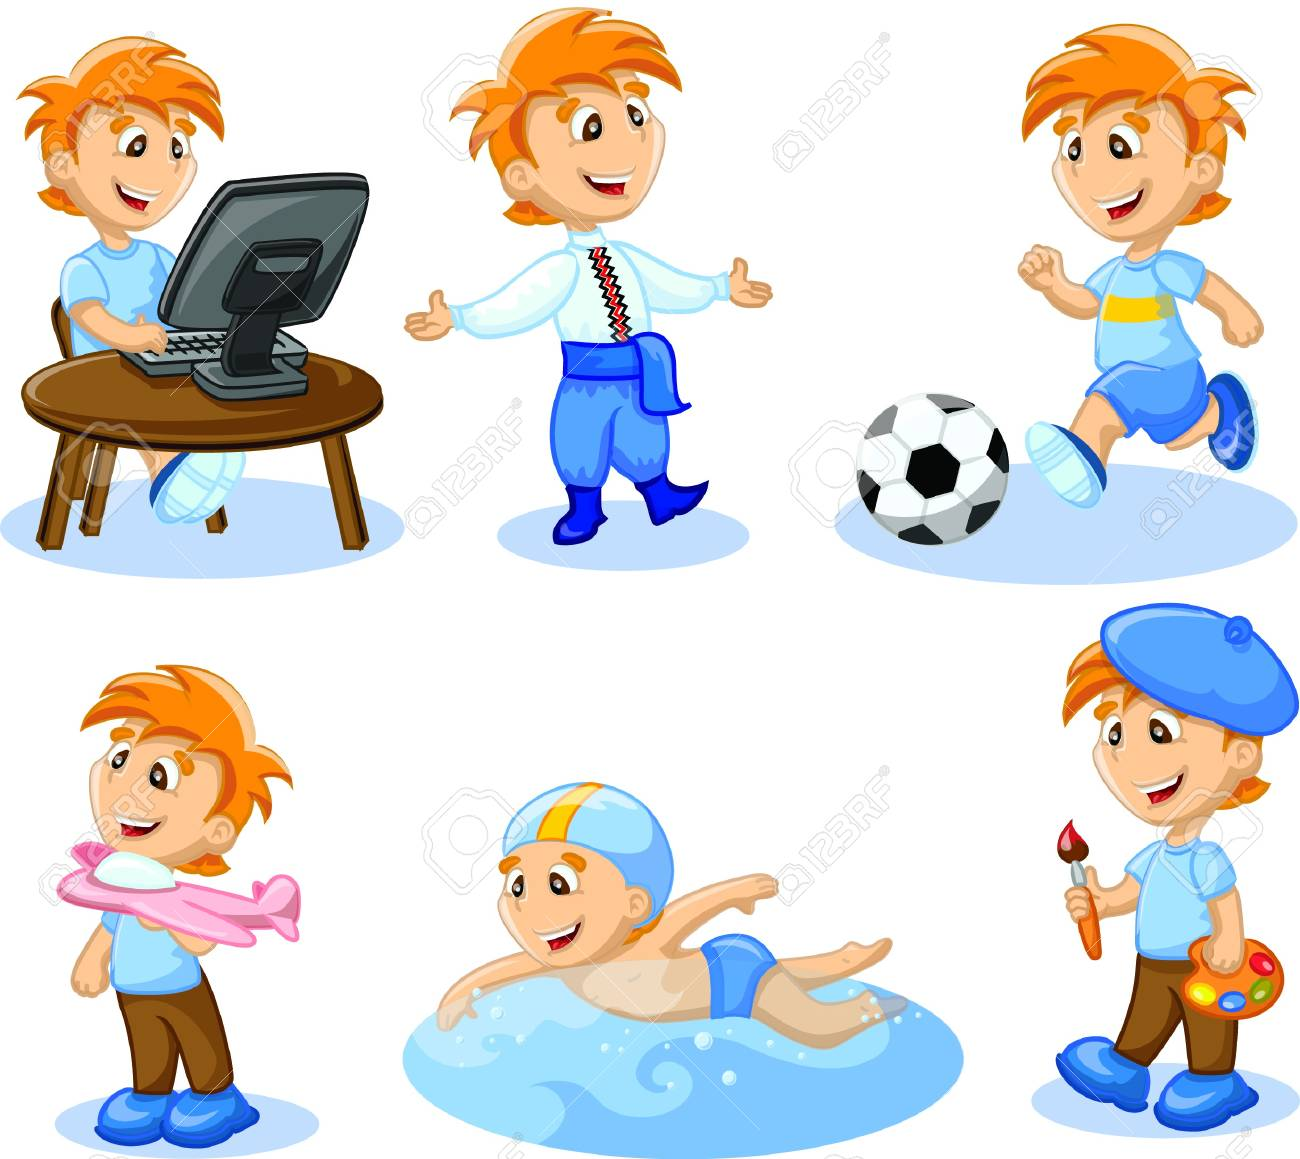 Boy Is Engaged In Hobbies Royalty Free Cliparts Vectors And Stock Illustration Image 17514735